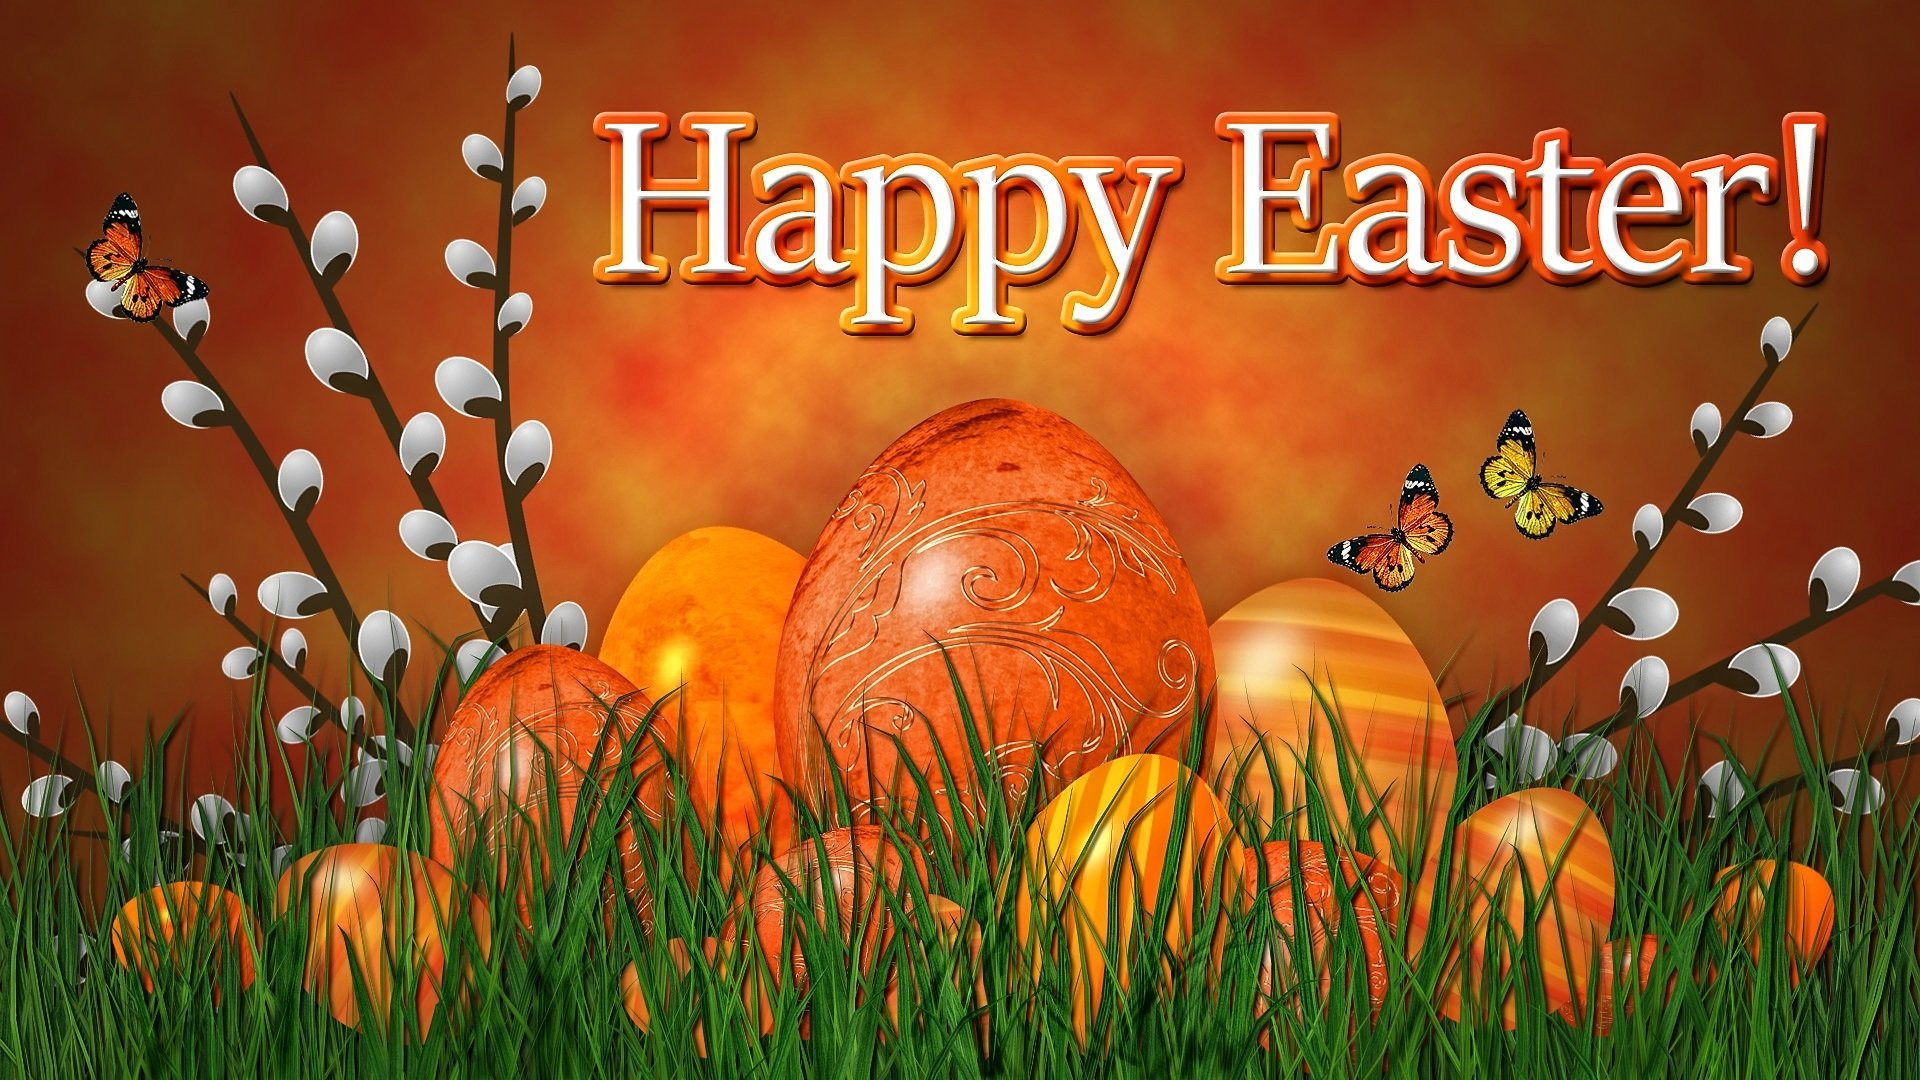 Easter Wallpapers 1920x1080 Full Hd 1080p Desktop Backgrounds